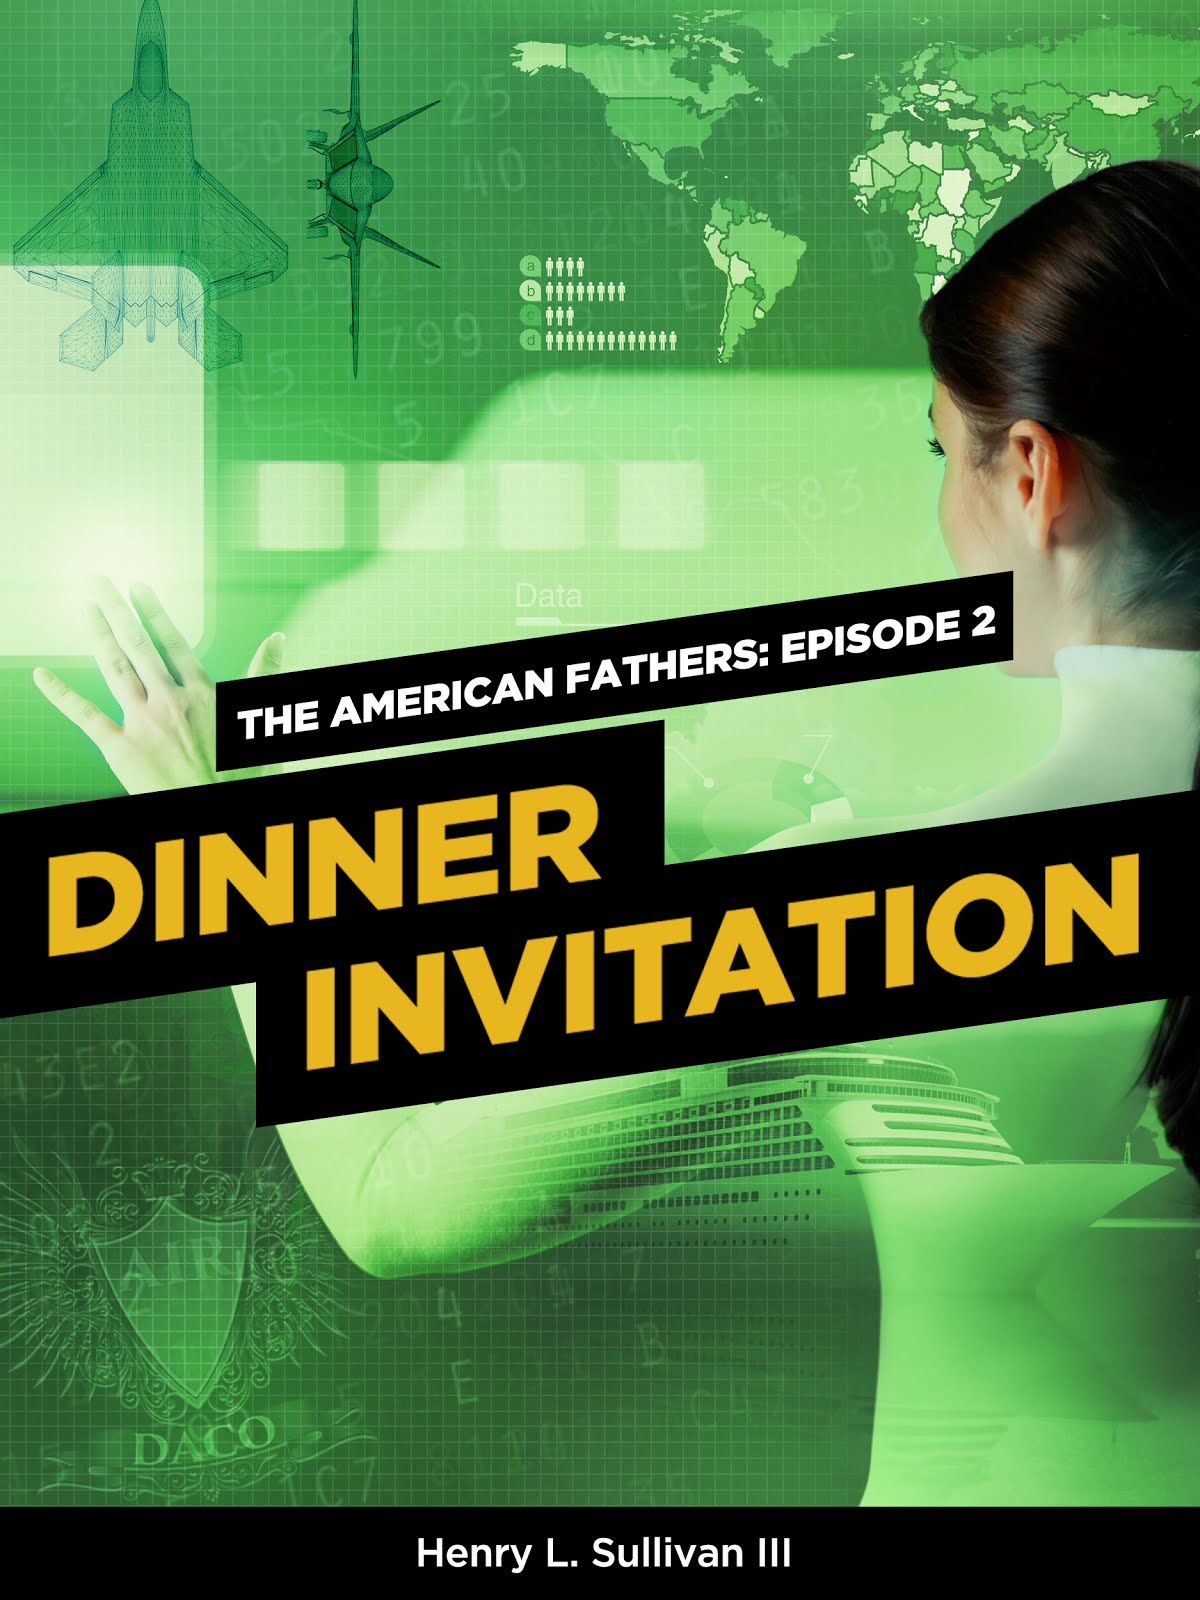 The American Fathers Episode 2